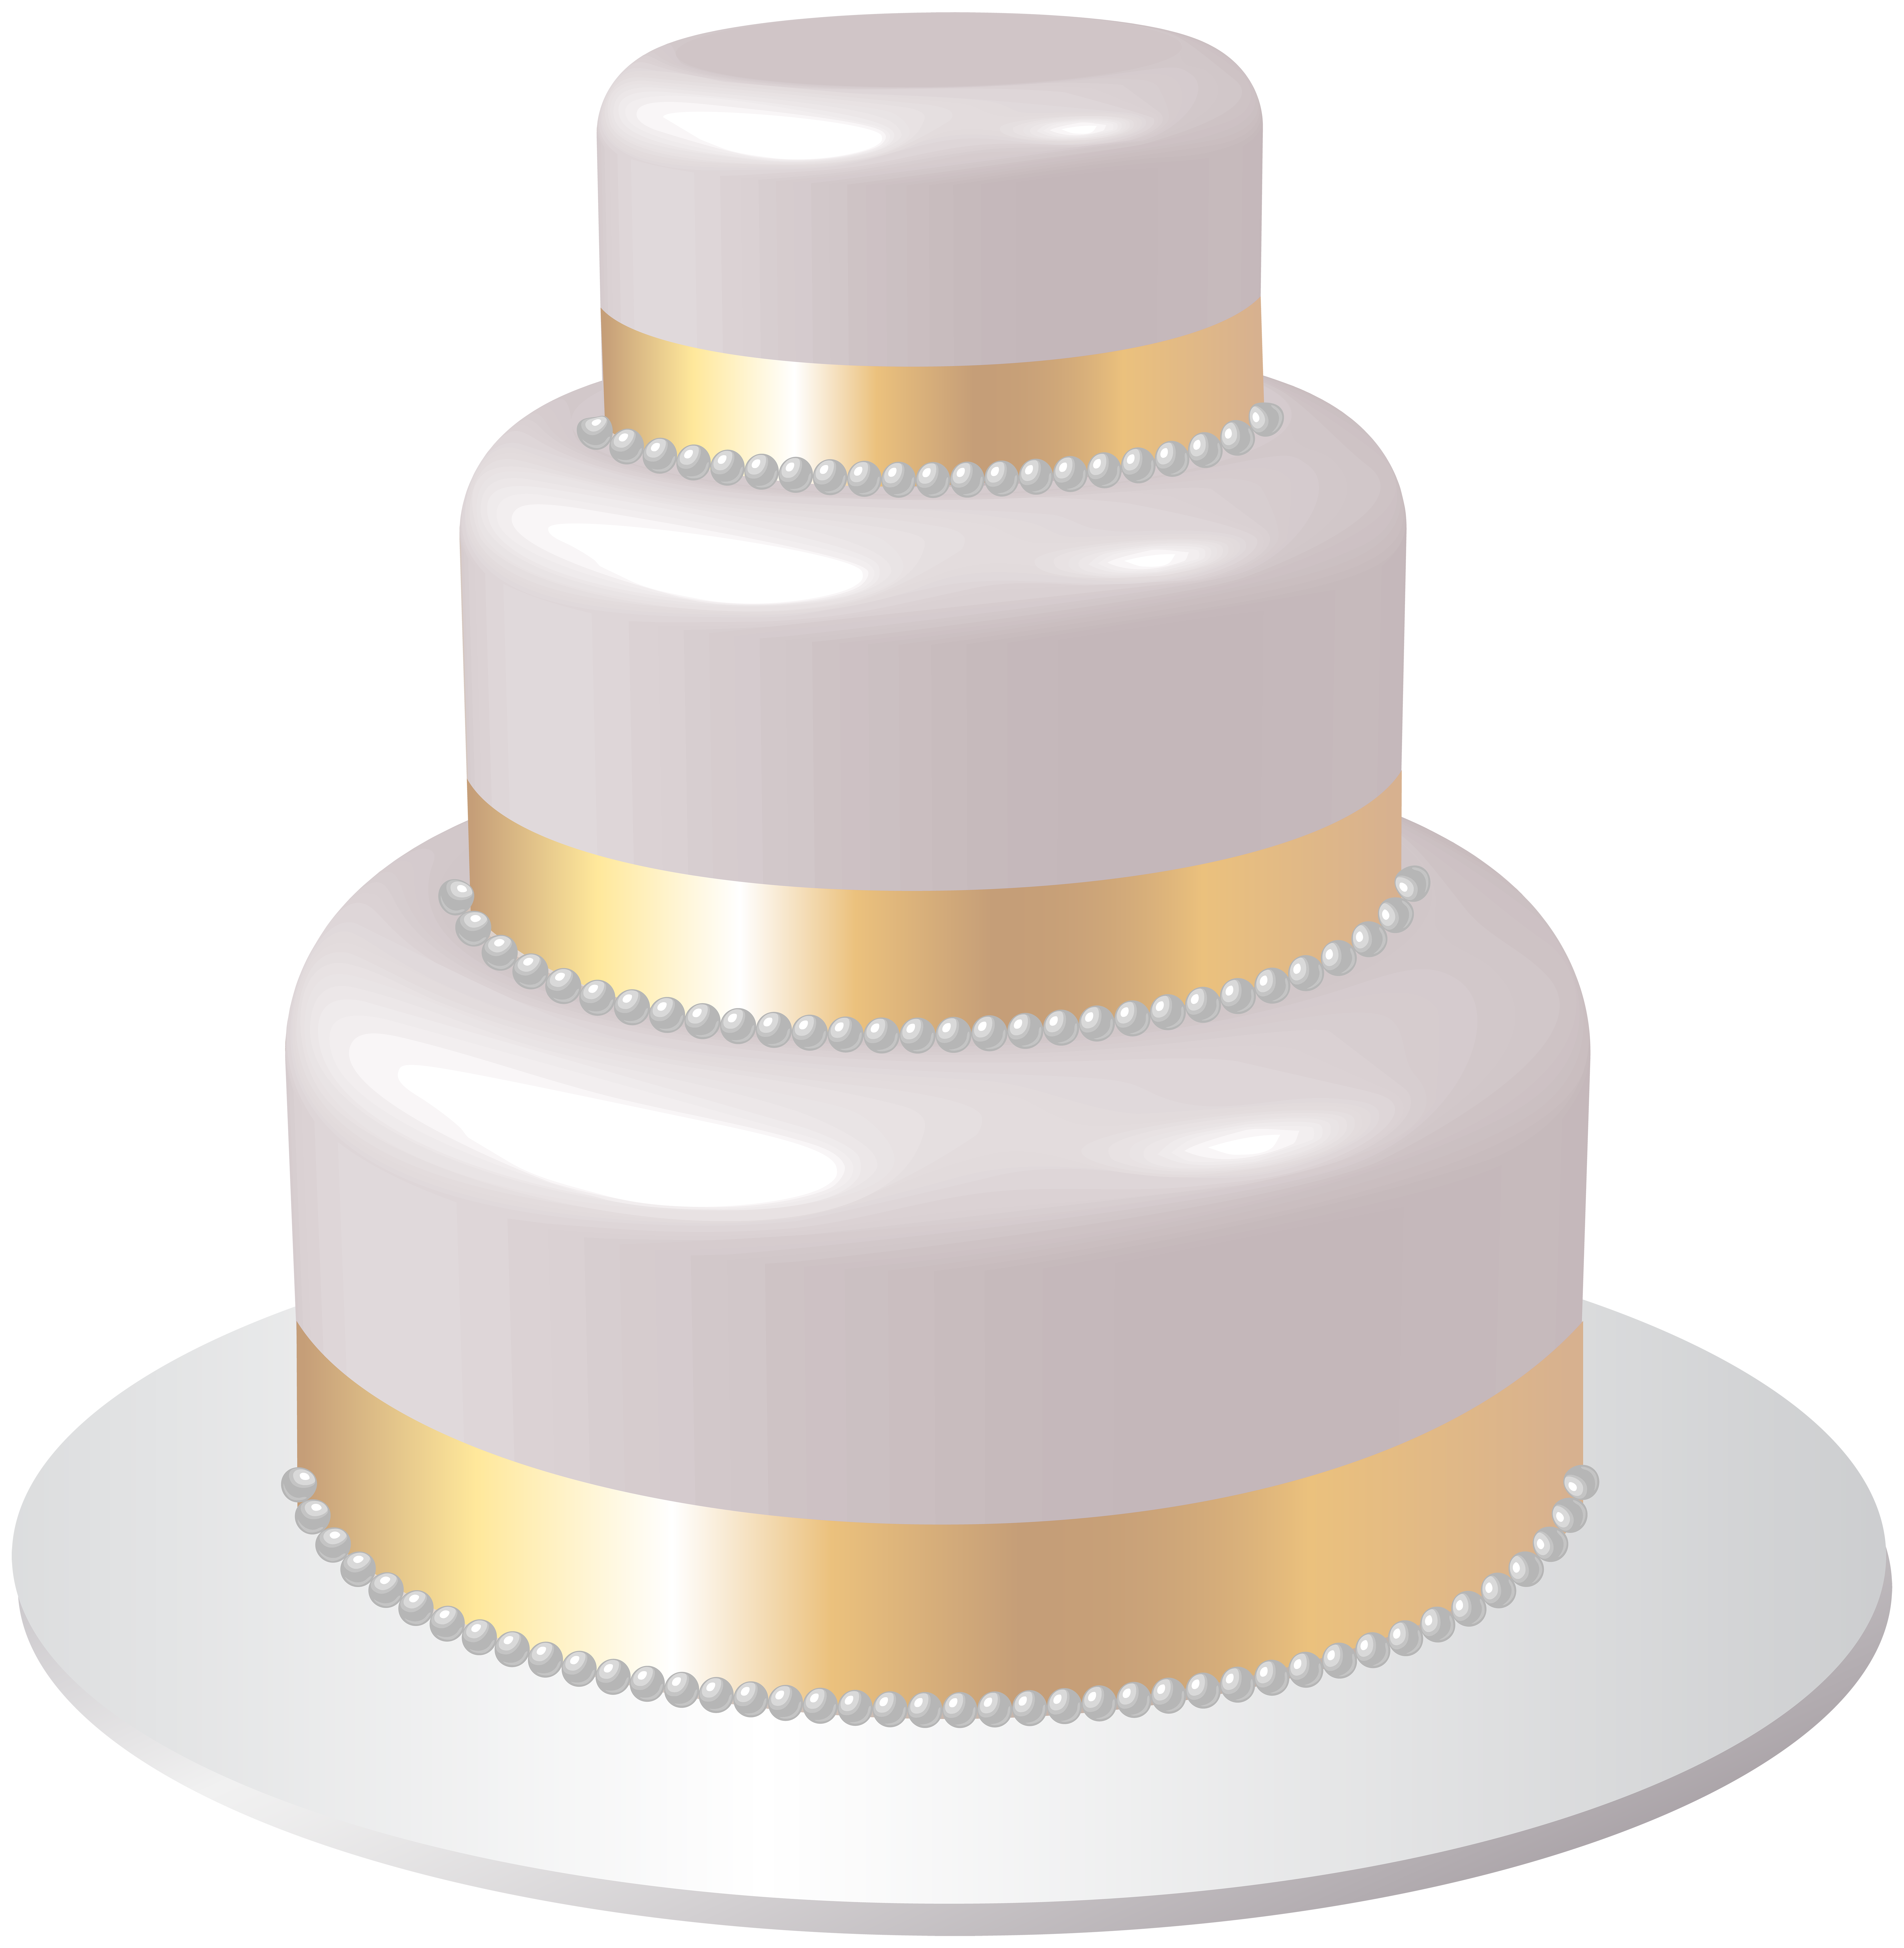 Wedding cake clipart png. Clip art image gallery